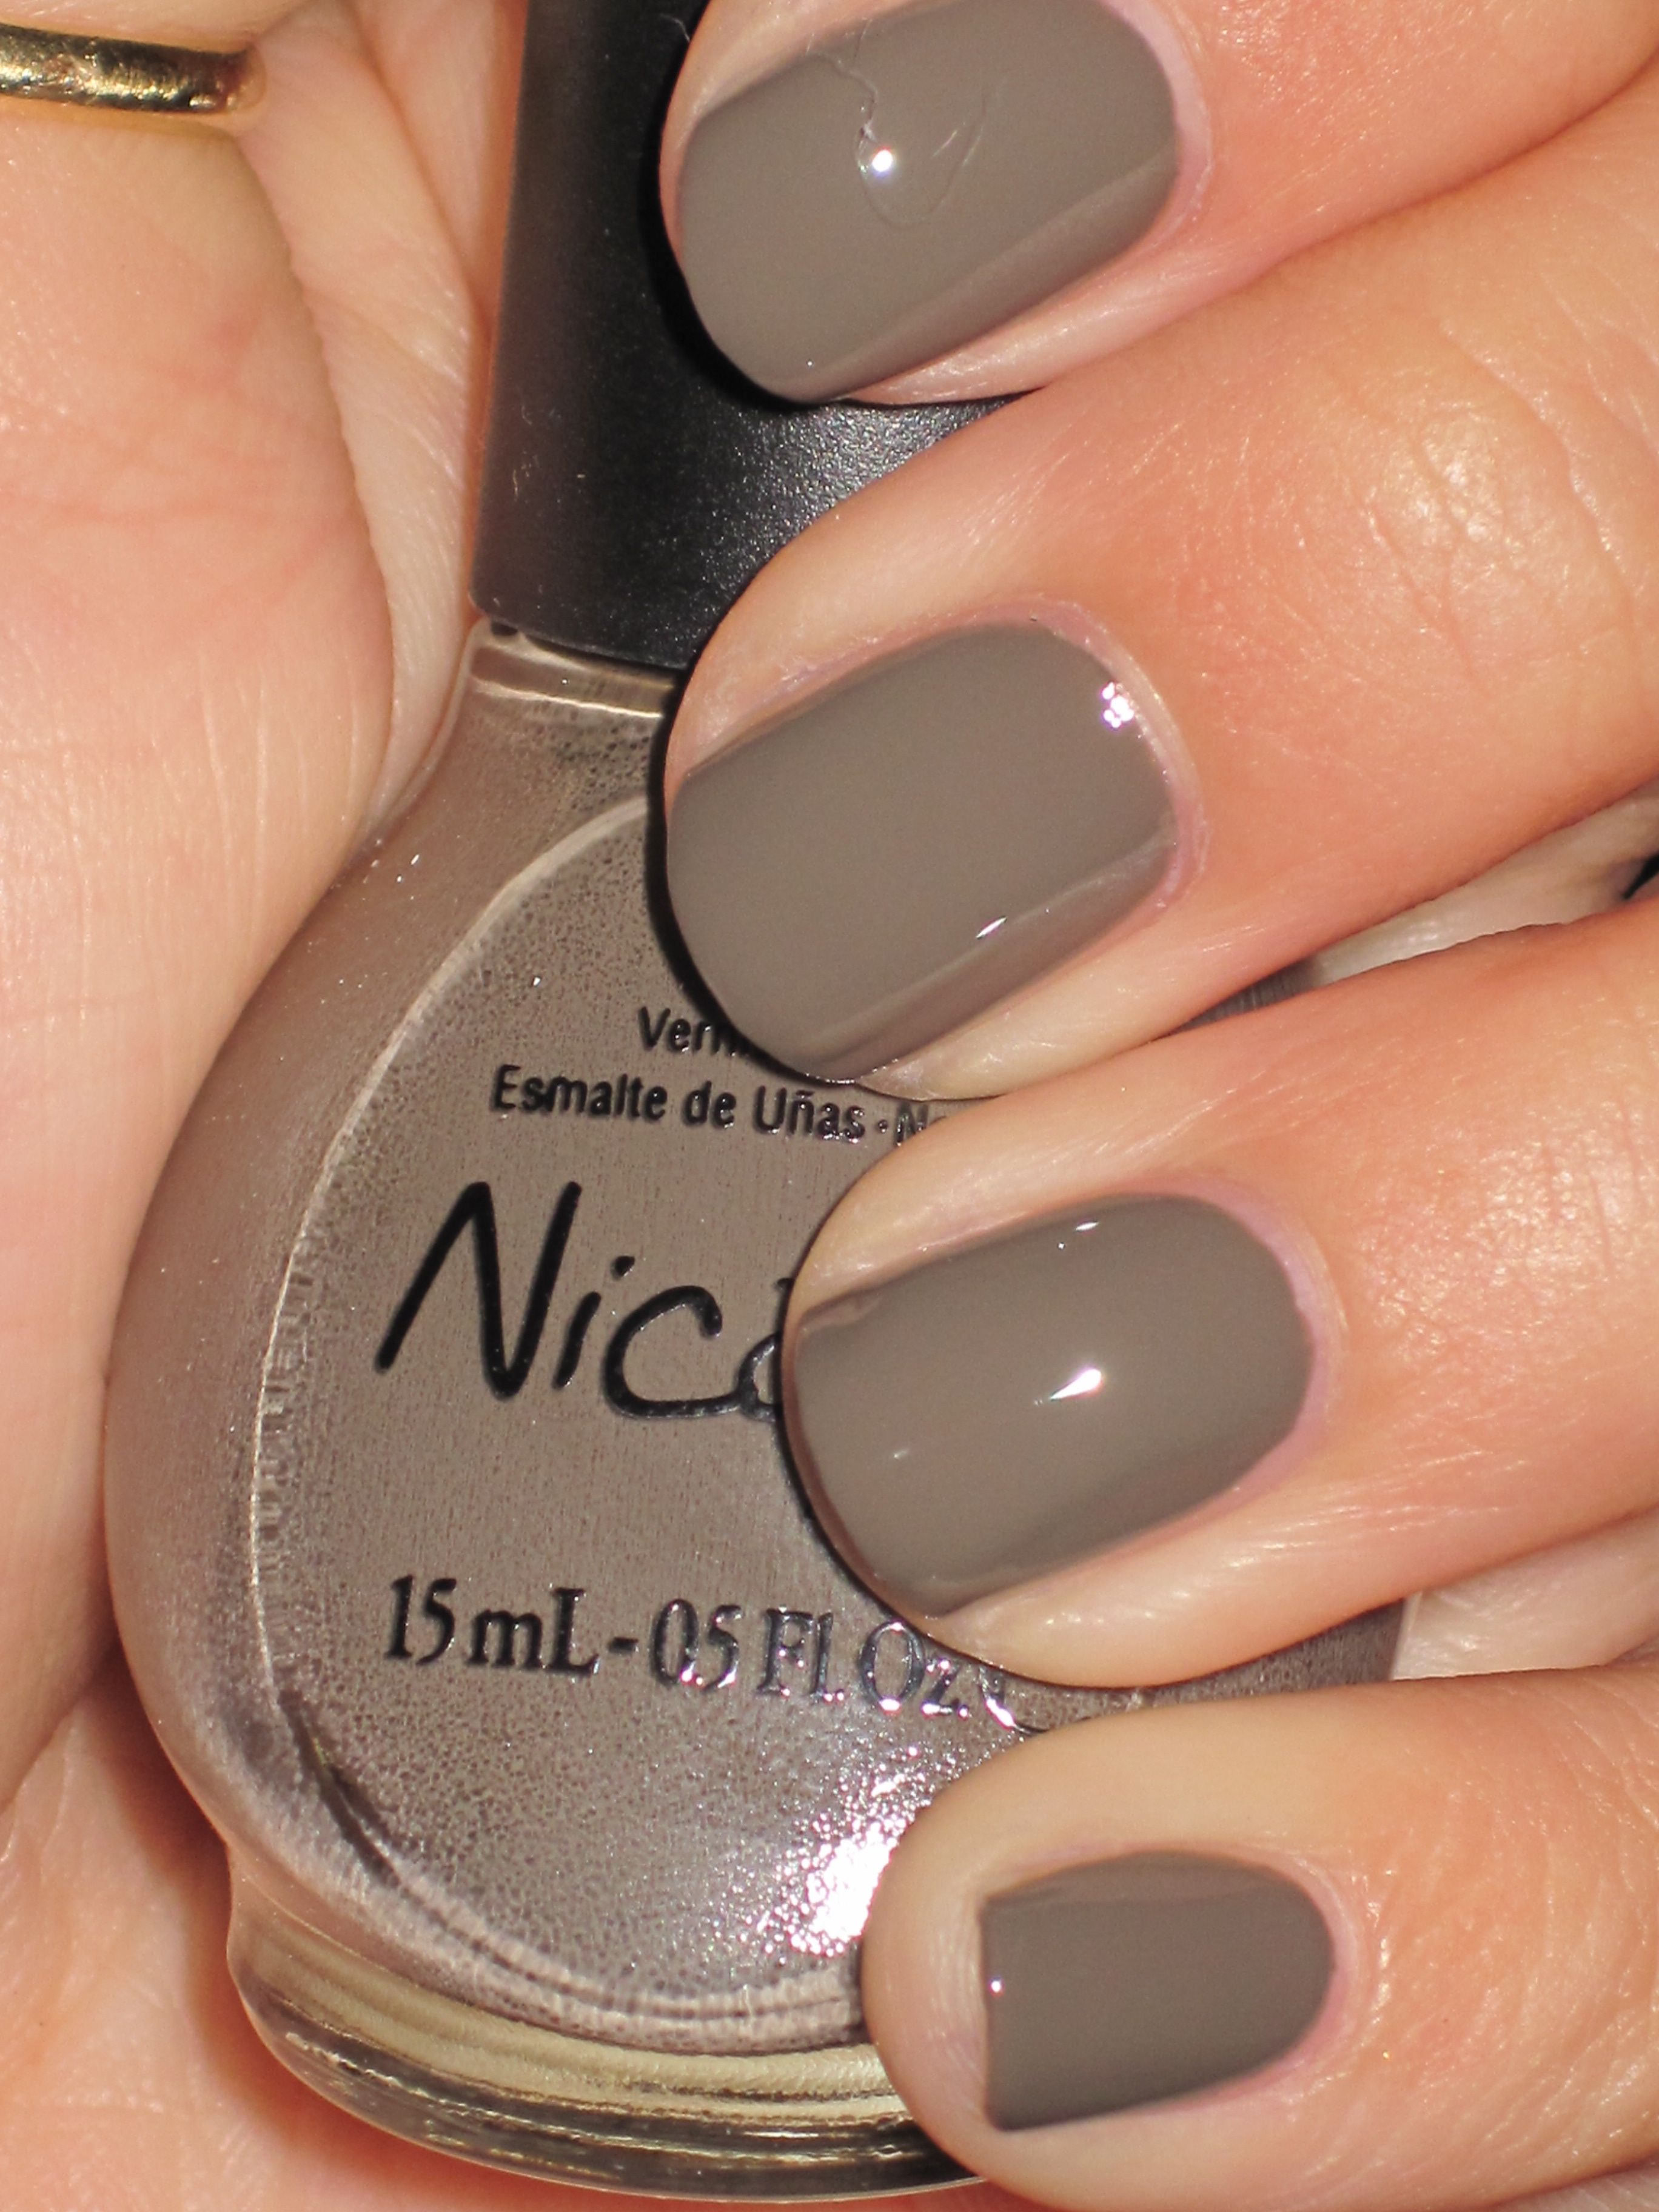 Really obsessed with anything the color taupe recently!!